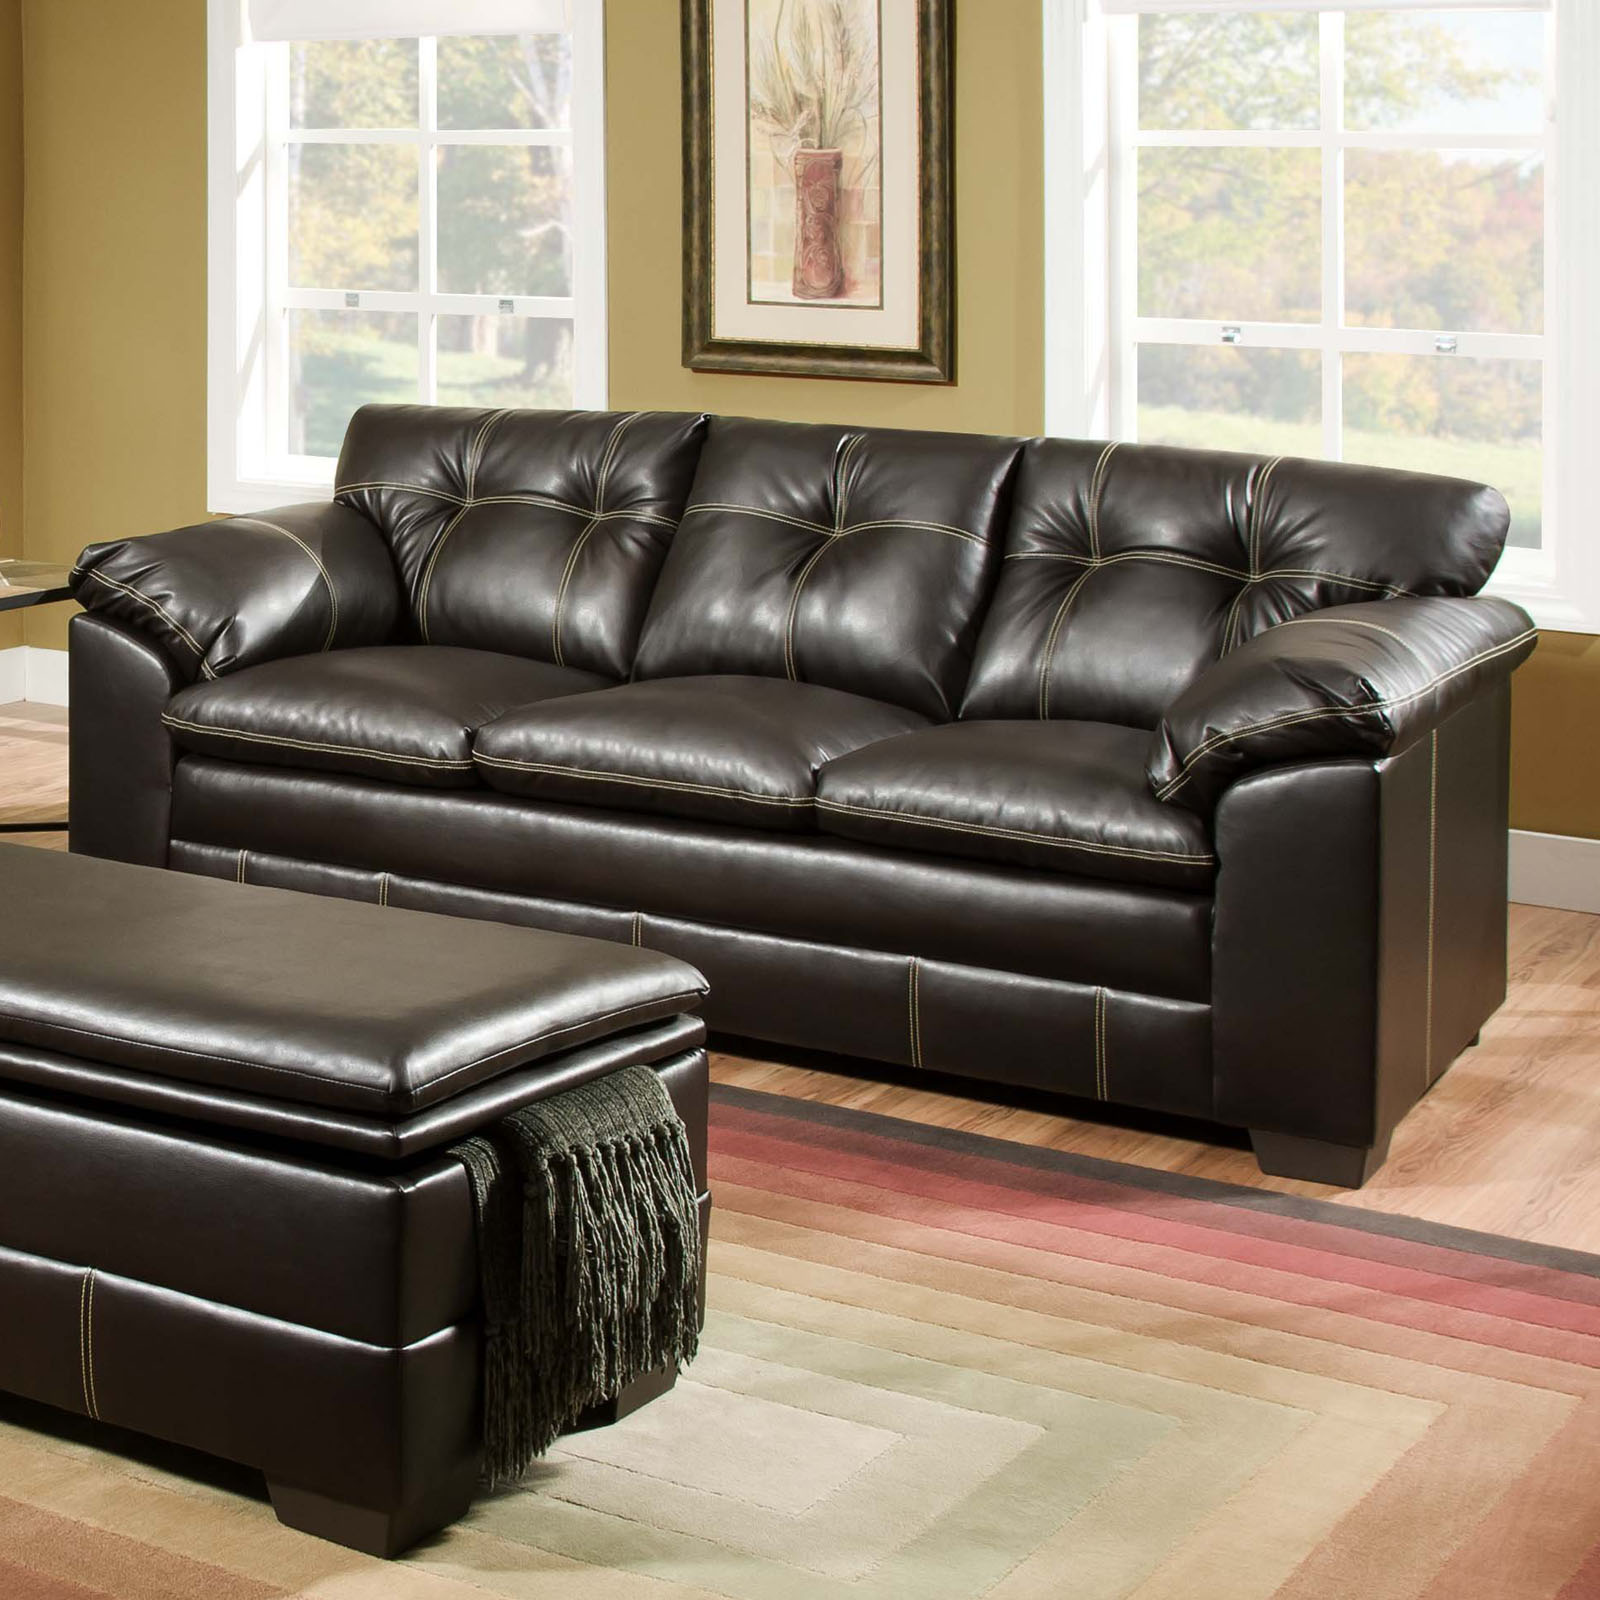 Simmons Upholstery Premier Bonded Leather Sofa